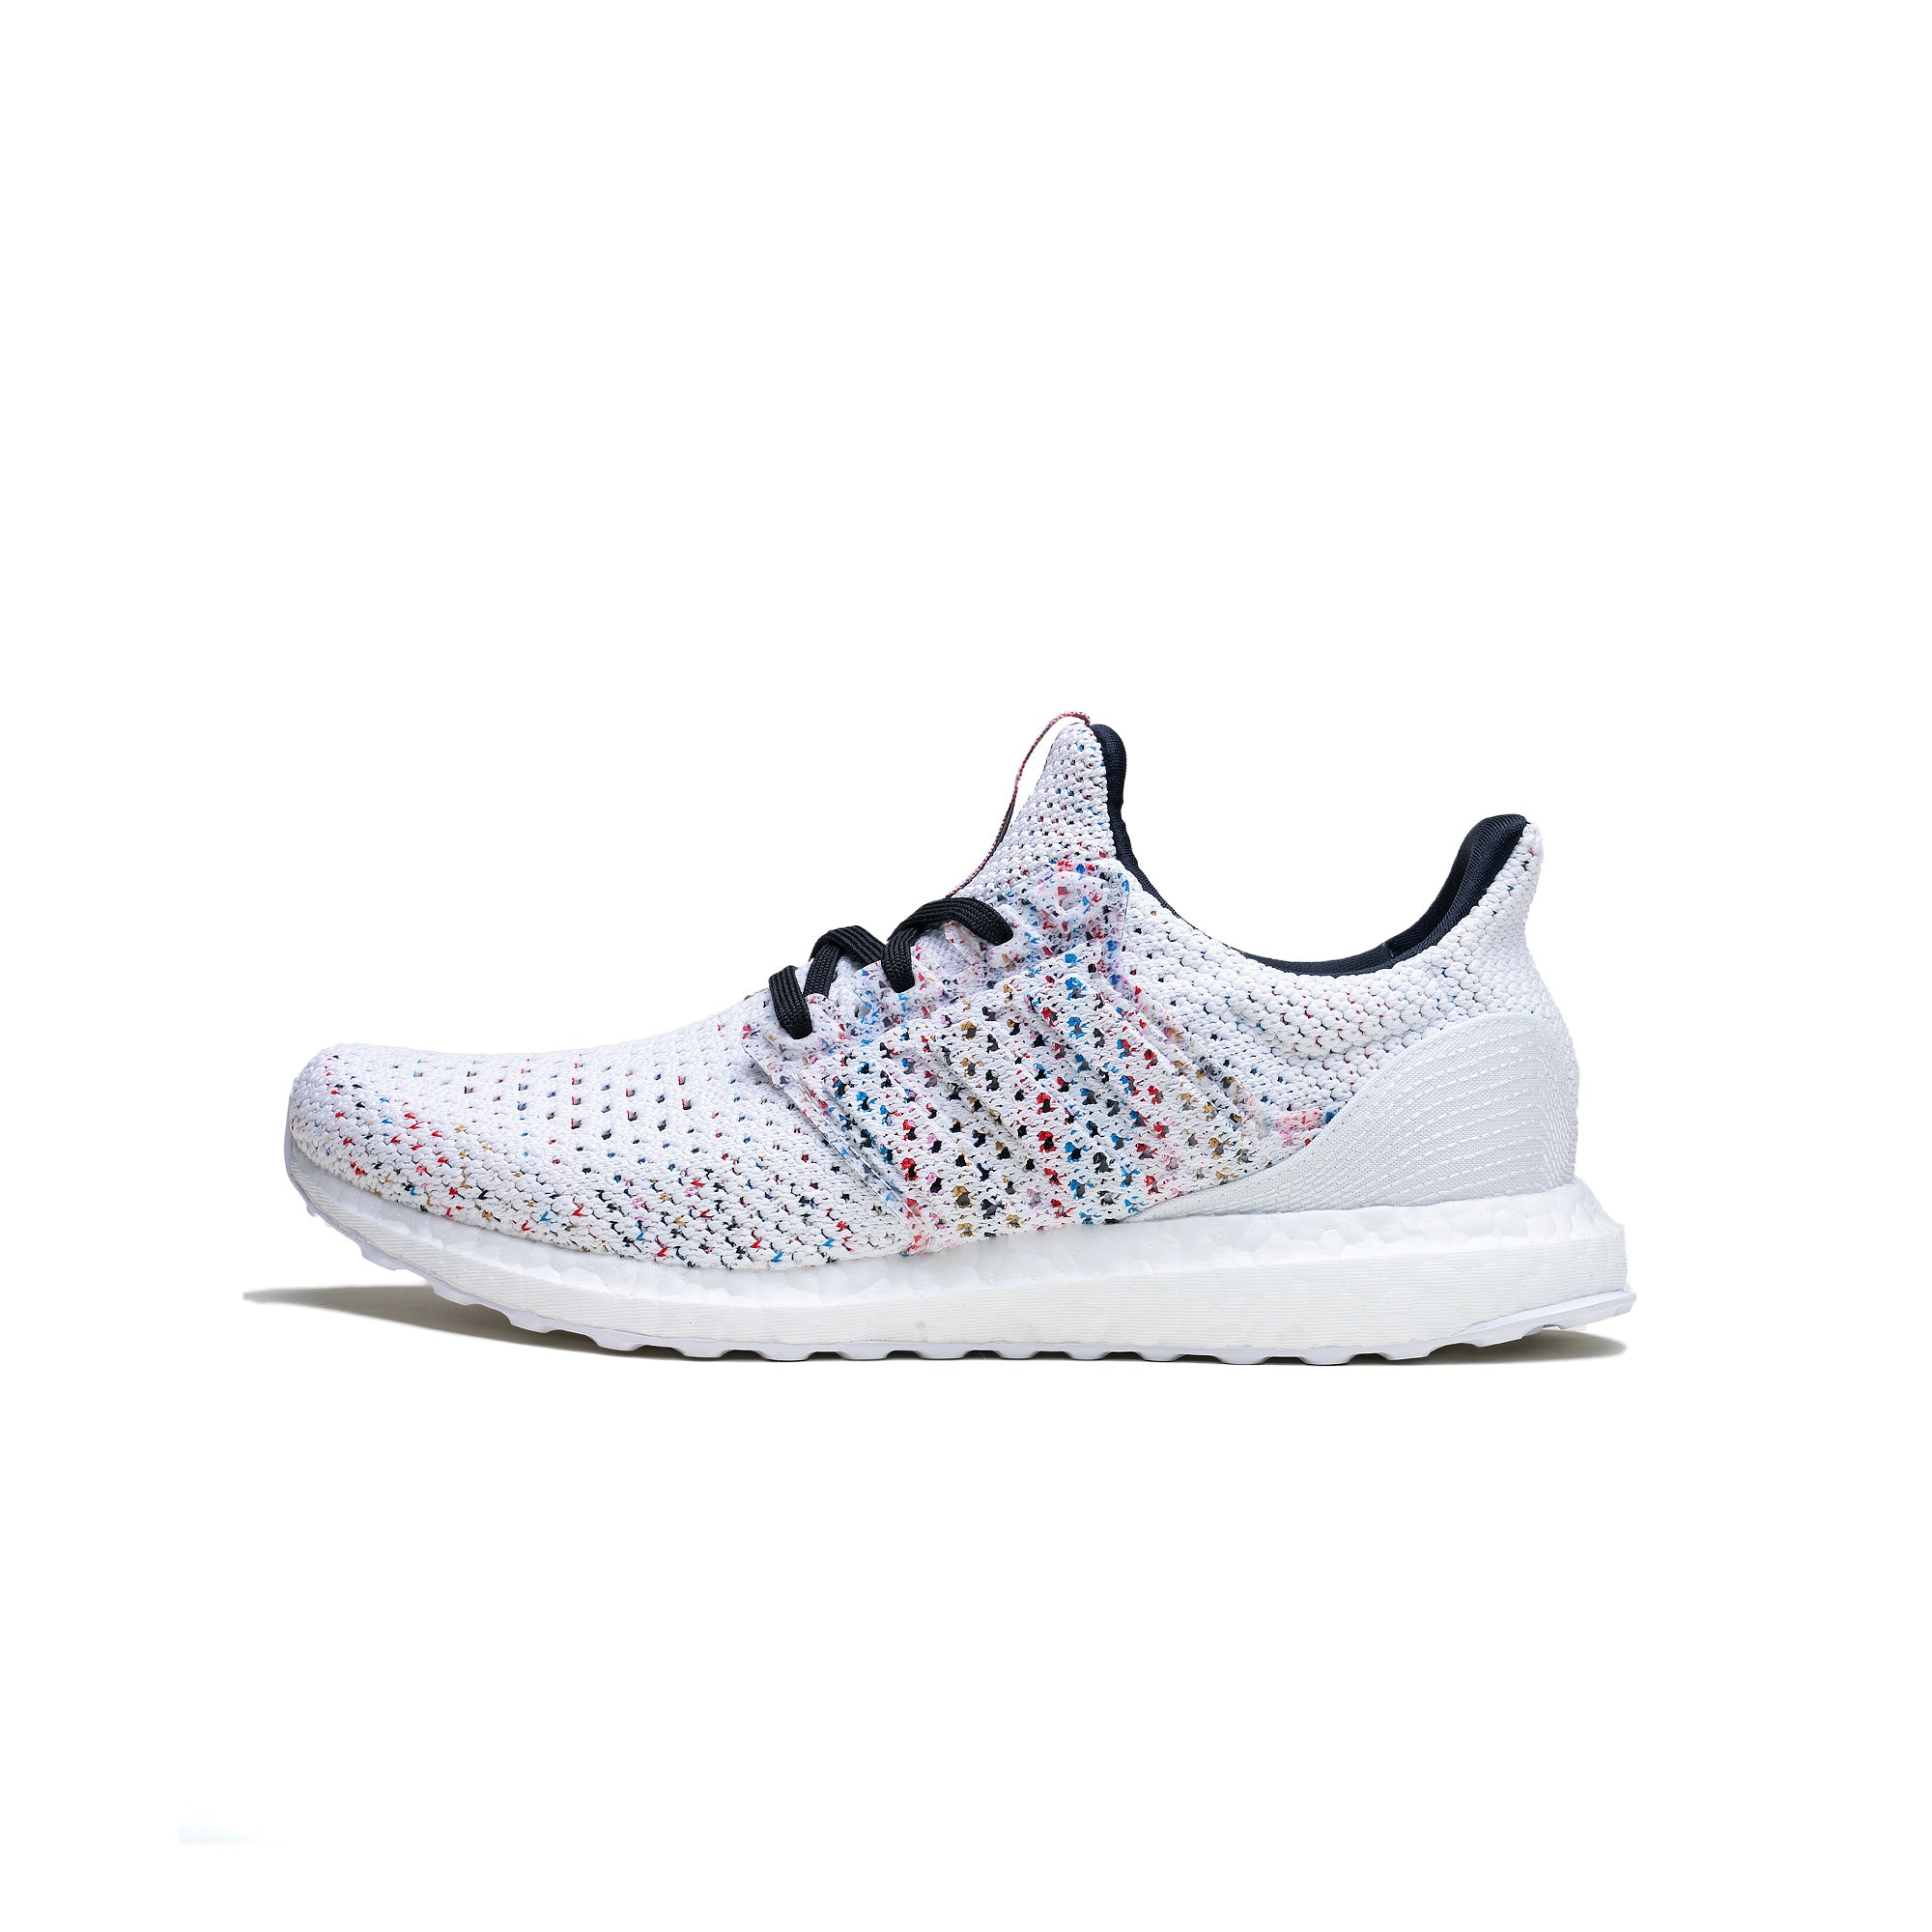 on sale 9e4af 7ca69 adidas x Missoni UltraBOOST Clima [D97744]